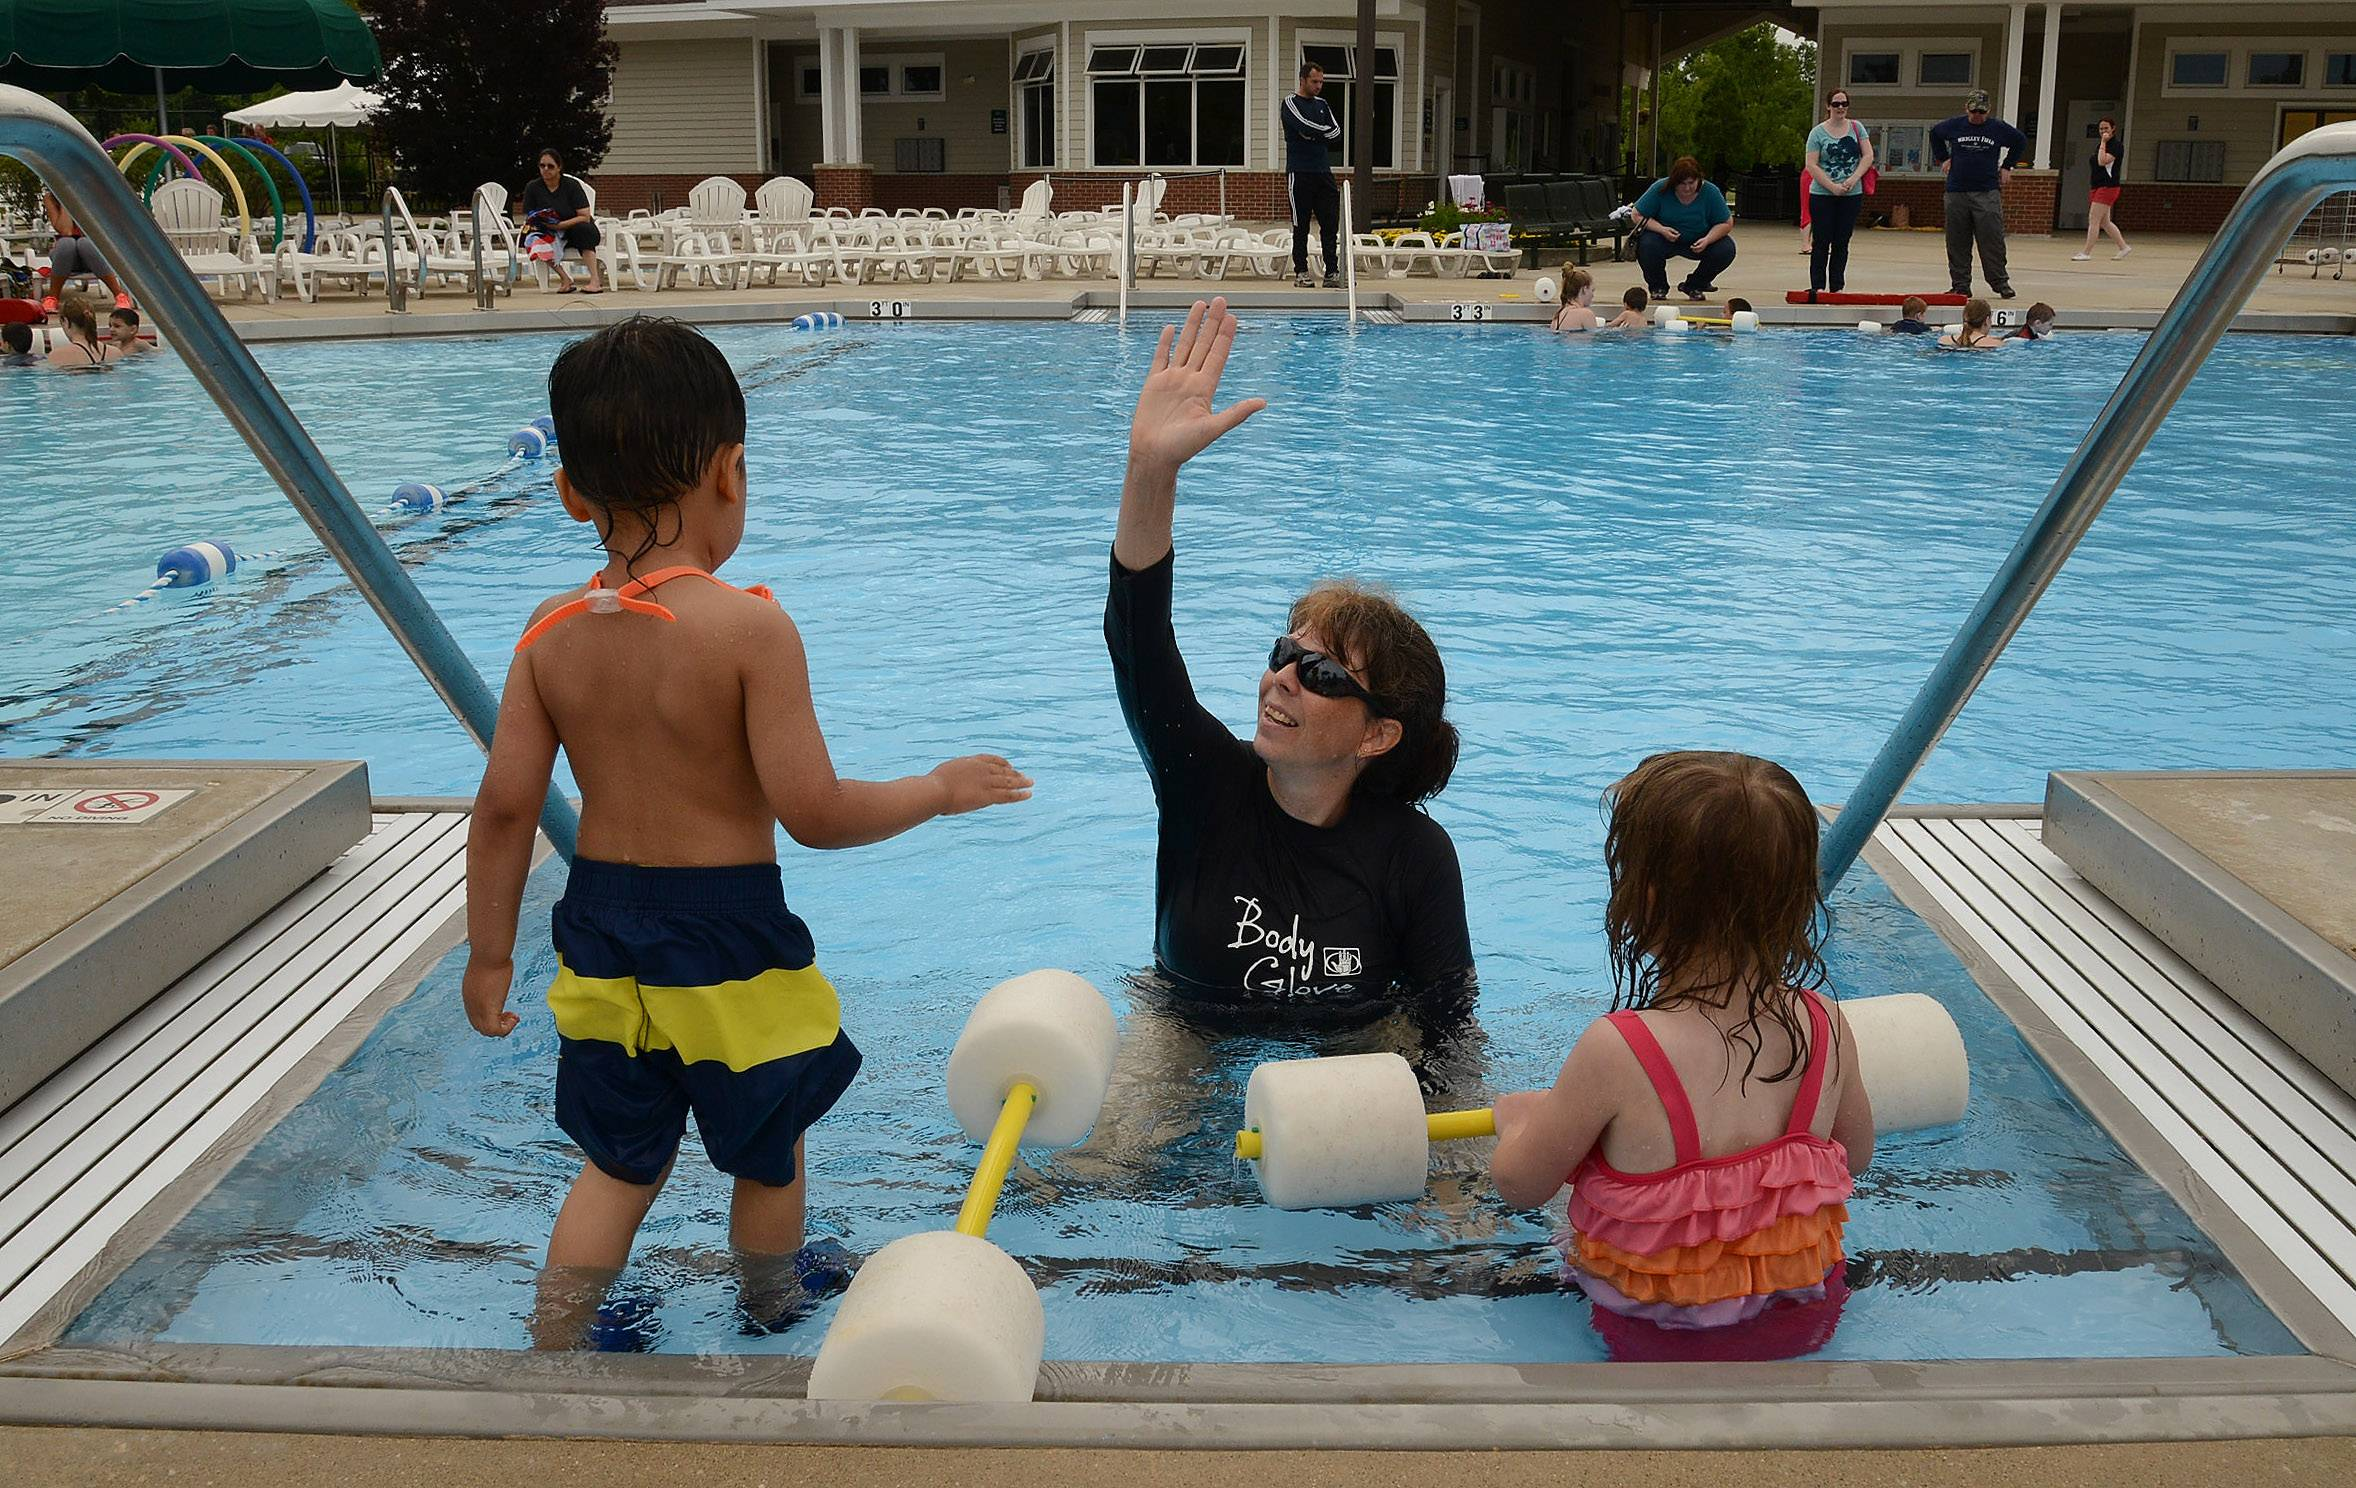 Swim instructor Jenni Delvecchio gives a high-five to Christopher Mitchell, 4, Gurnee, and Madeleine Strean, 5, Lindenhurst, after completion of their lesson during the World's Largest Swimming Lesson at the Hunt Club Park Aquatic Center in Gurnee.